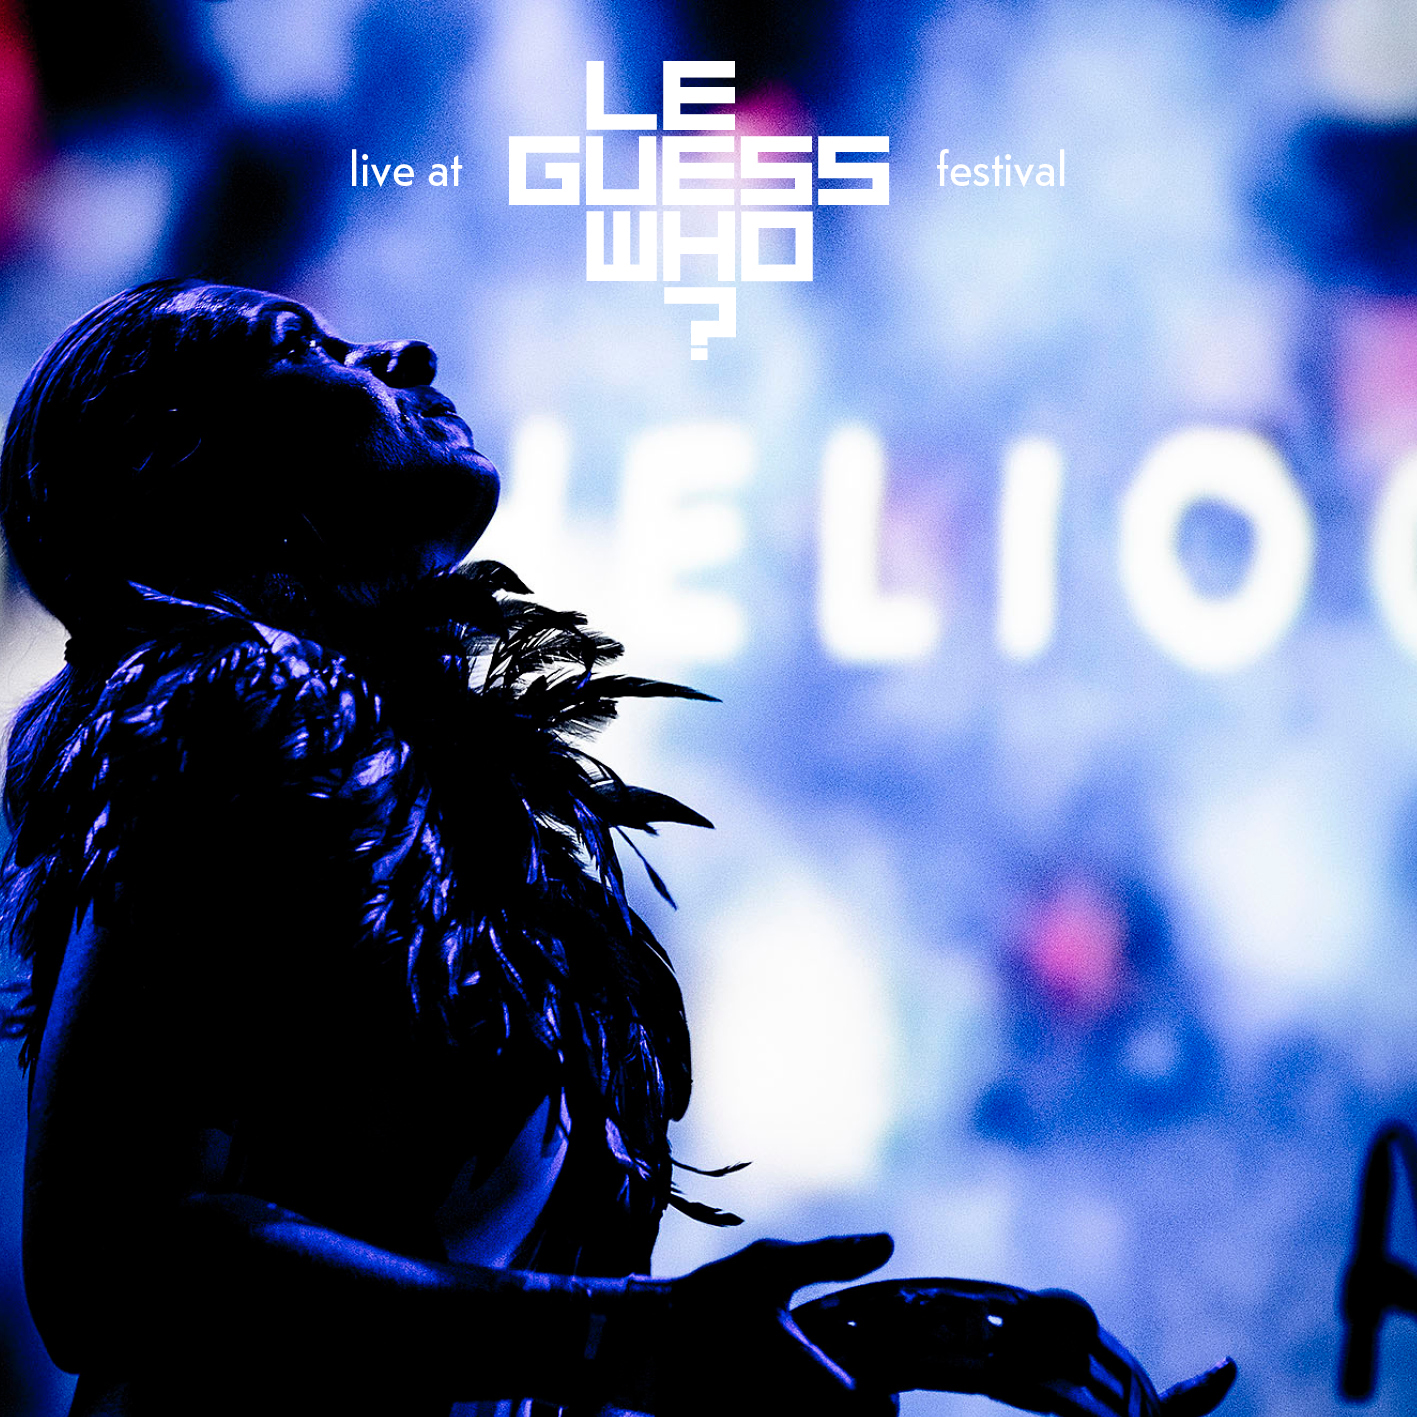 Stream: eclectic London-based collective The Heliocentrics live at Le Guess Who? 2018